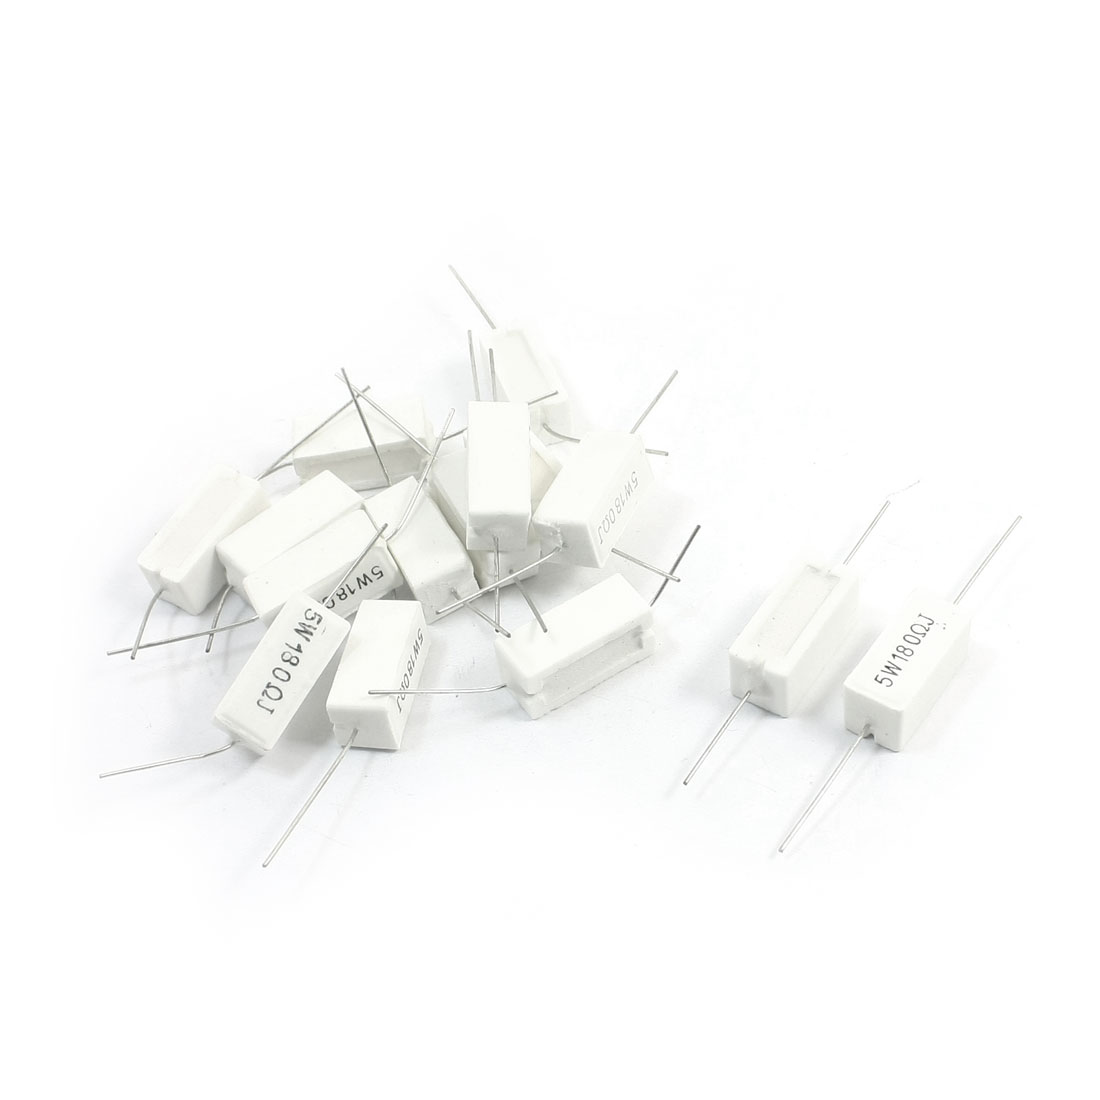 15Pcs 5Watt 180 Ohm 5% Tolerance Ceramic Cement Power Resistors